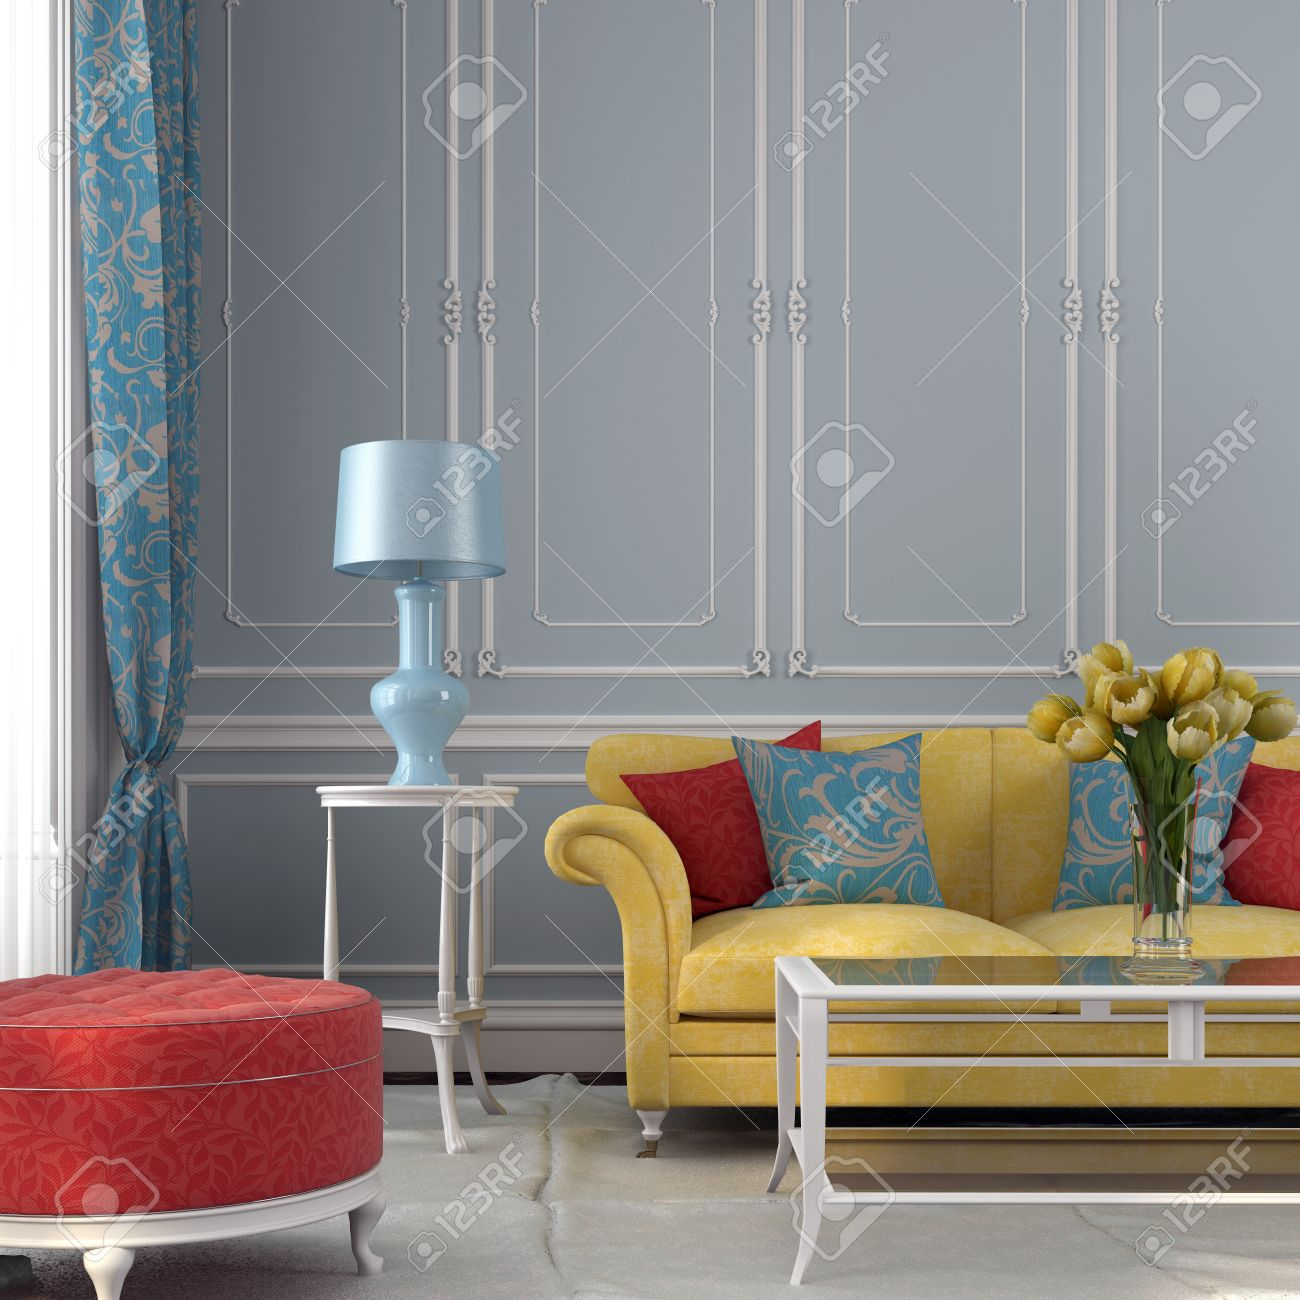 Classic Interior With Colored Furniture Against A Background Of Blue Wall  Stock Photo   28512409